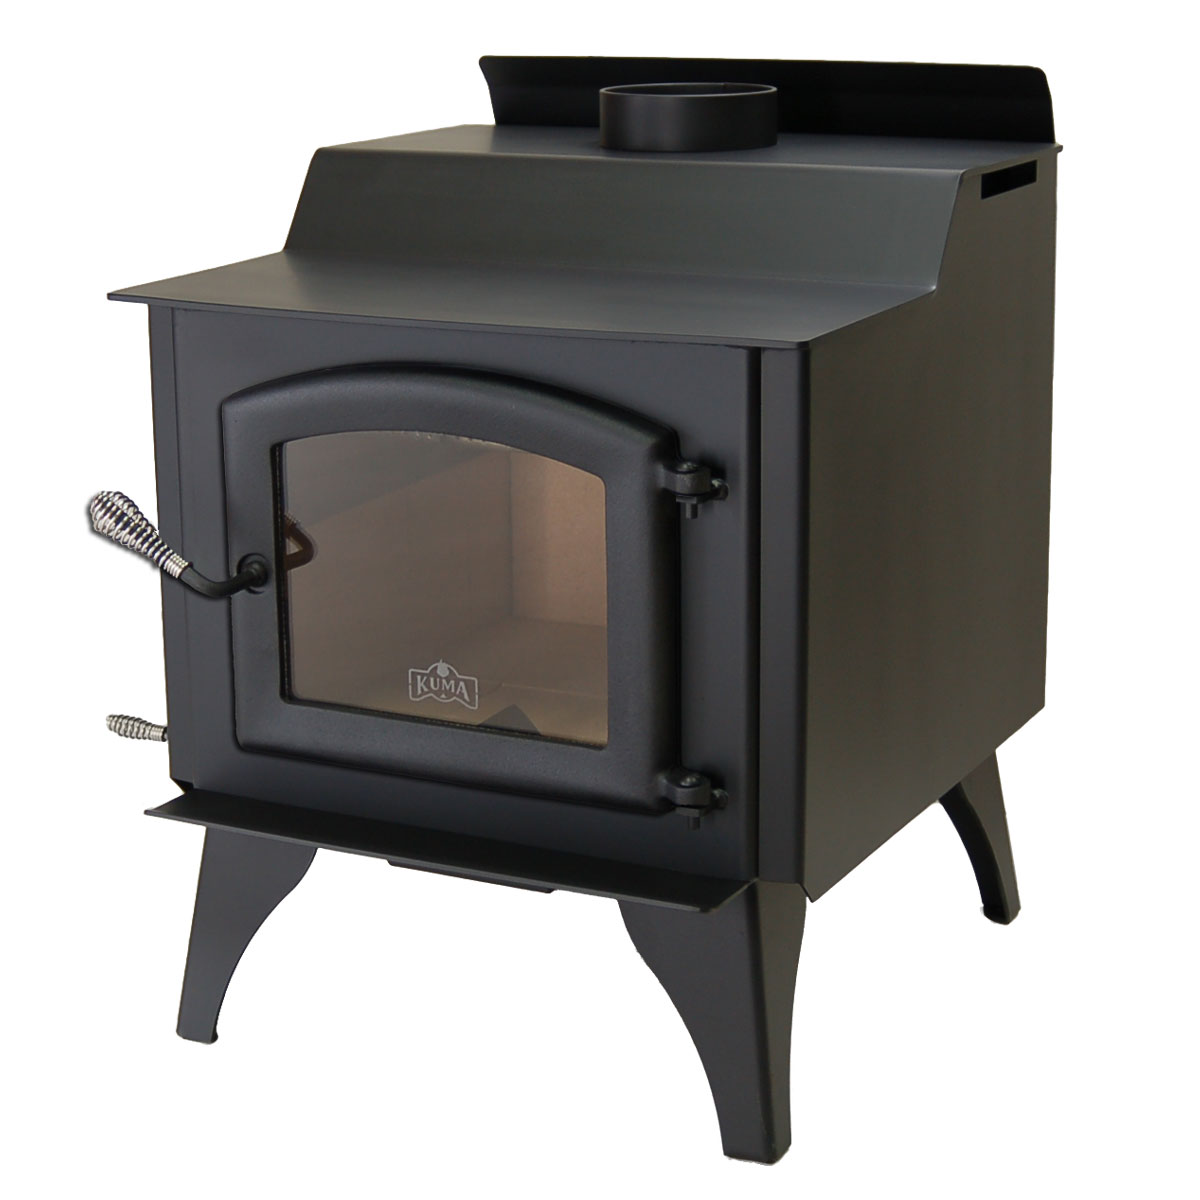 wood stoves kuma wood stoves rh woodstovessutemizu blogspot com Efel Oil Burning Stoves 9494 Deville Oil Stove